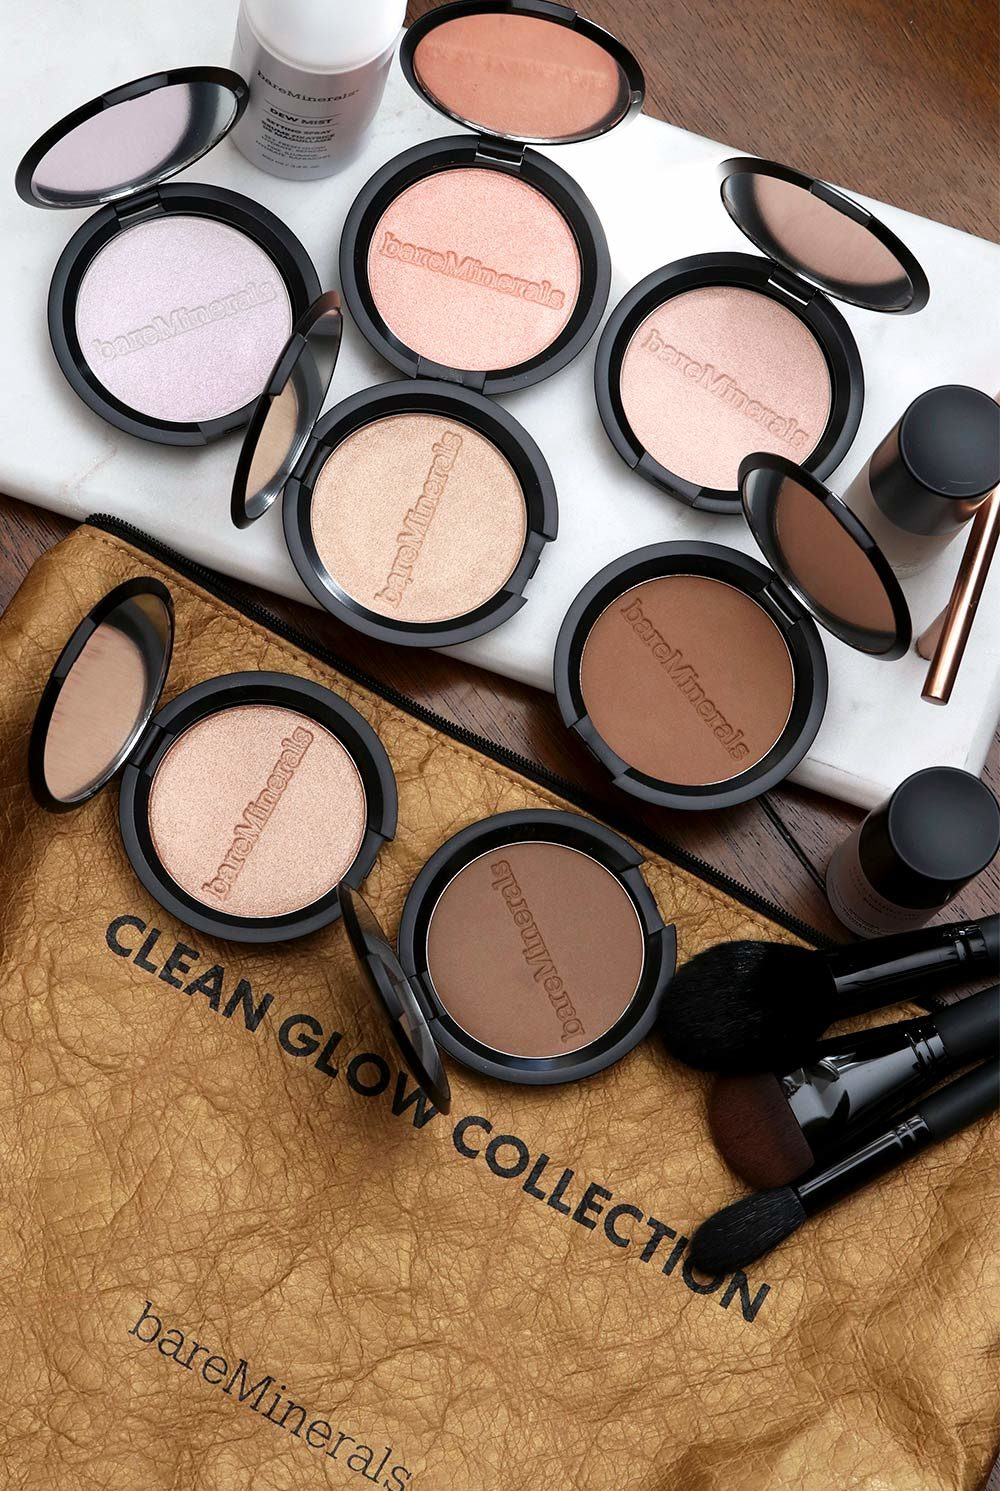 bareminerals clean glow collection summer 2019 1